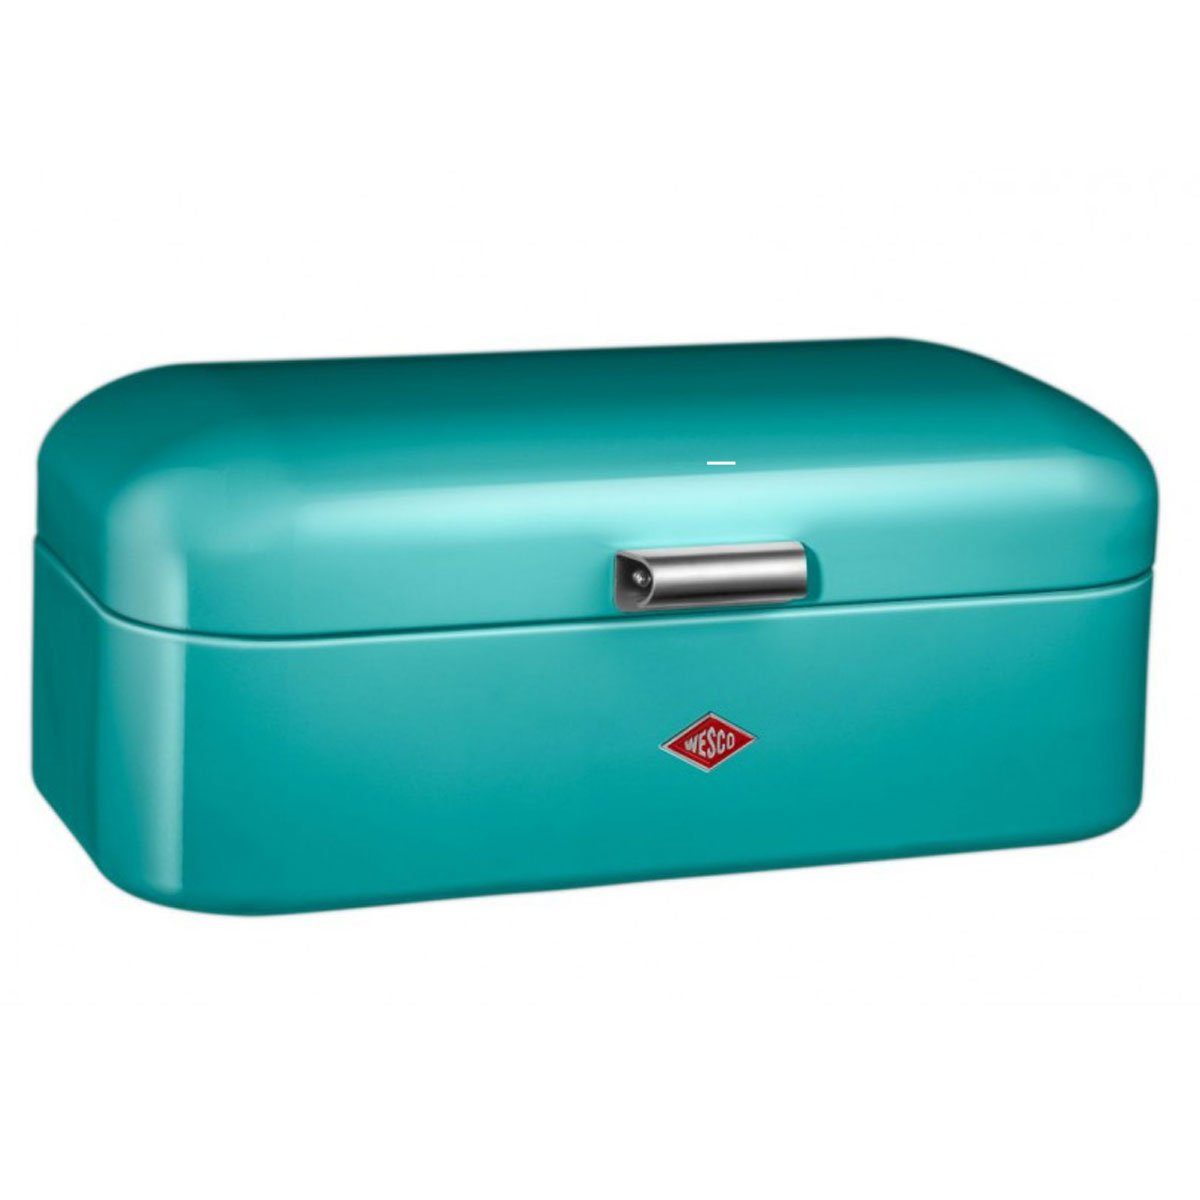 Grandy Storage Box Color: Turquoise by Wesco